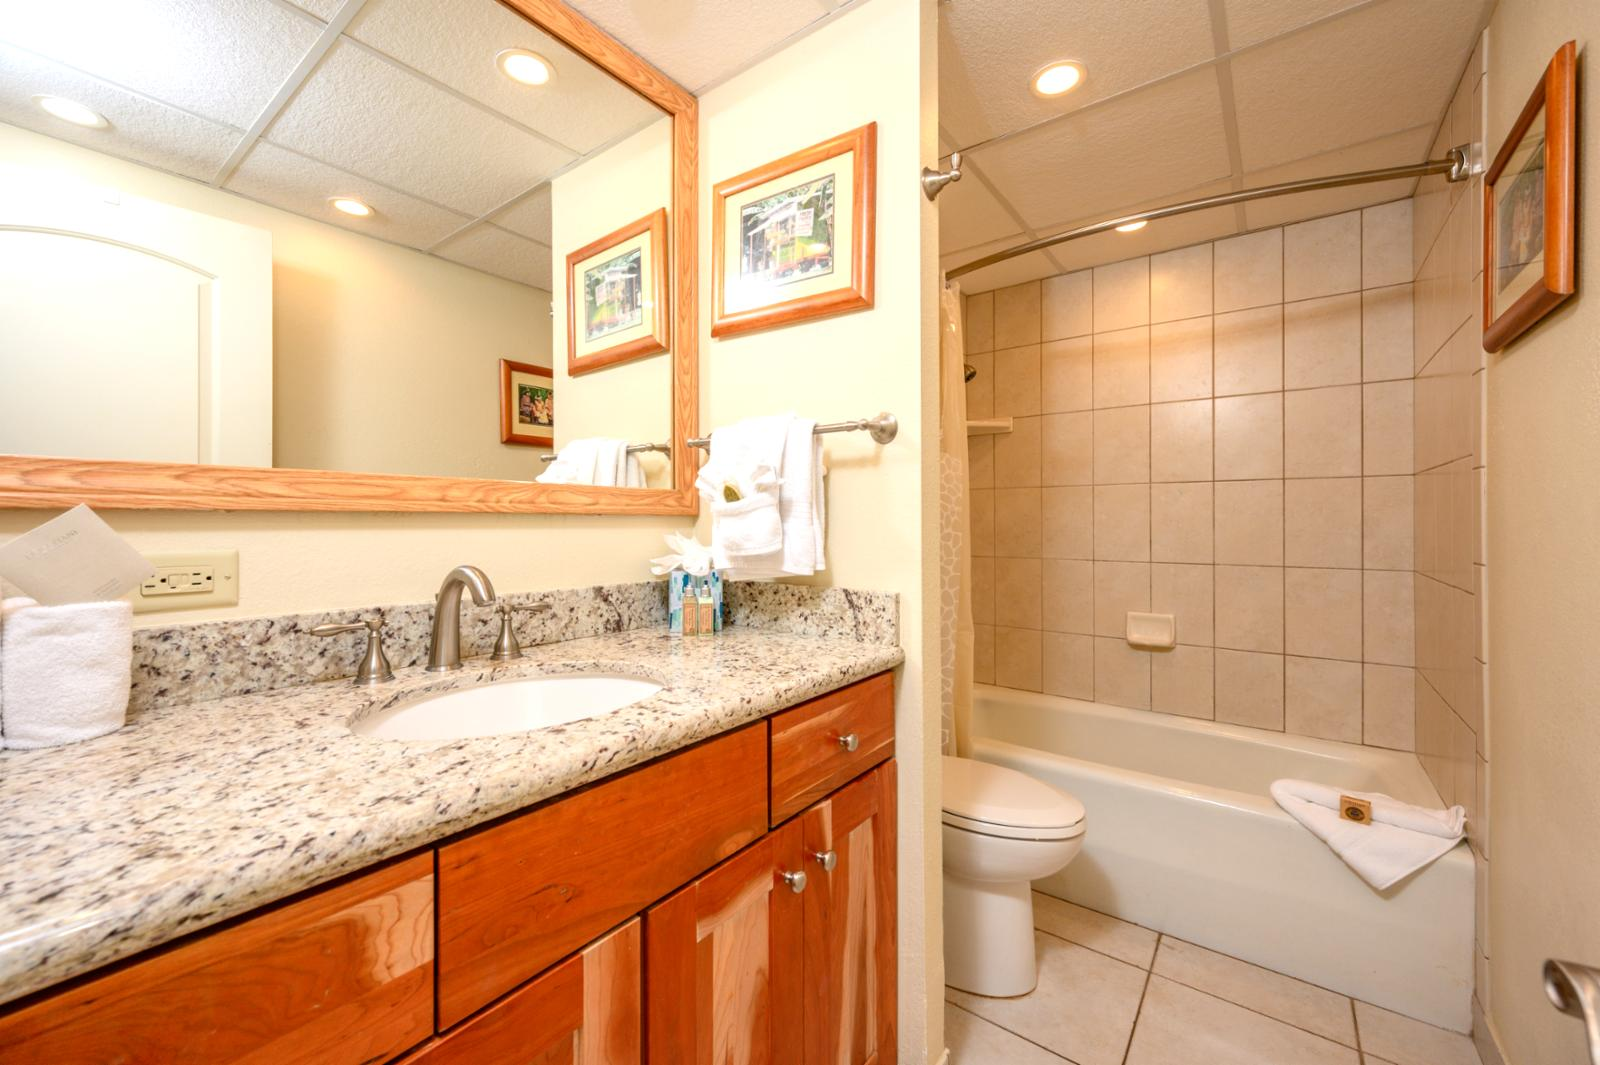 Guest bathroom with single vanity and soaking tub